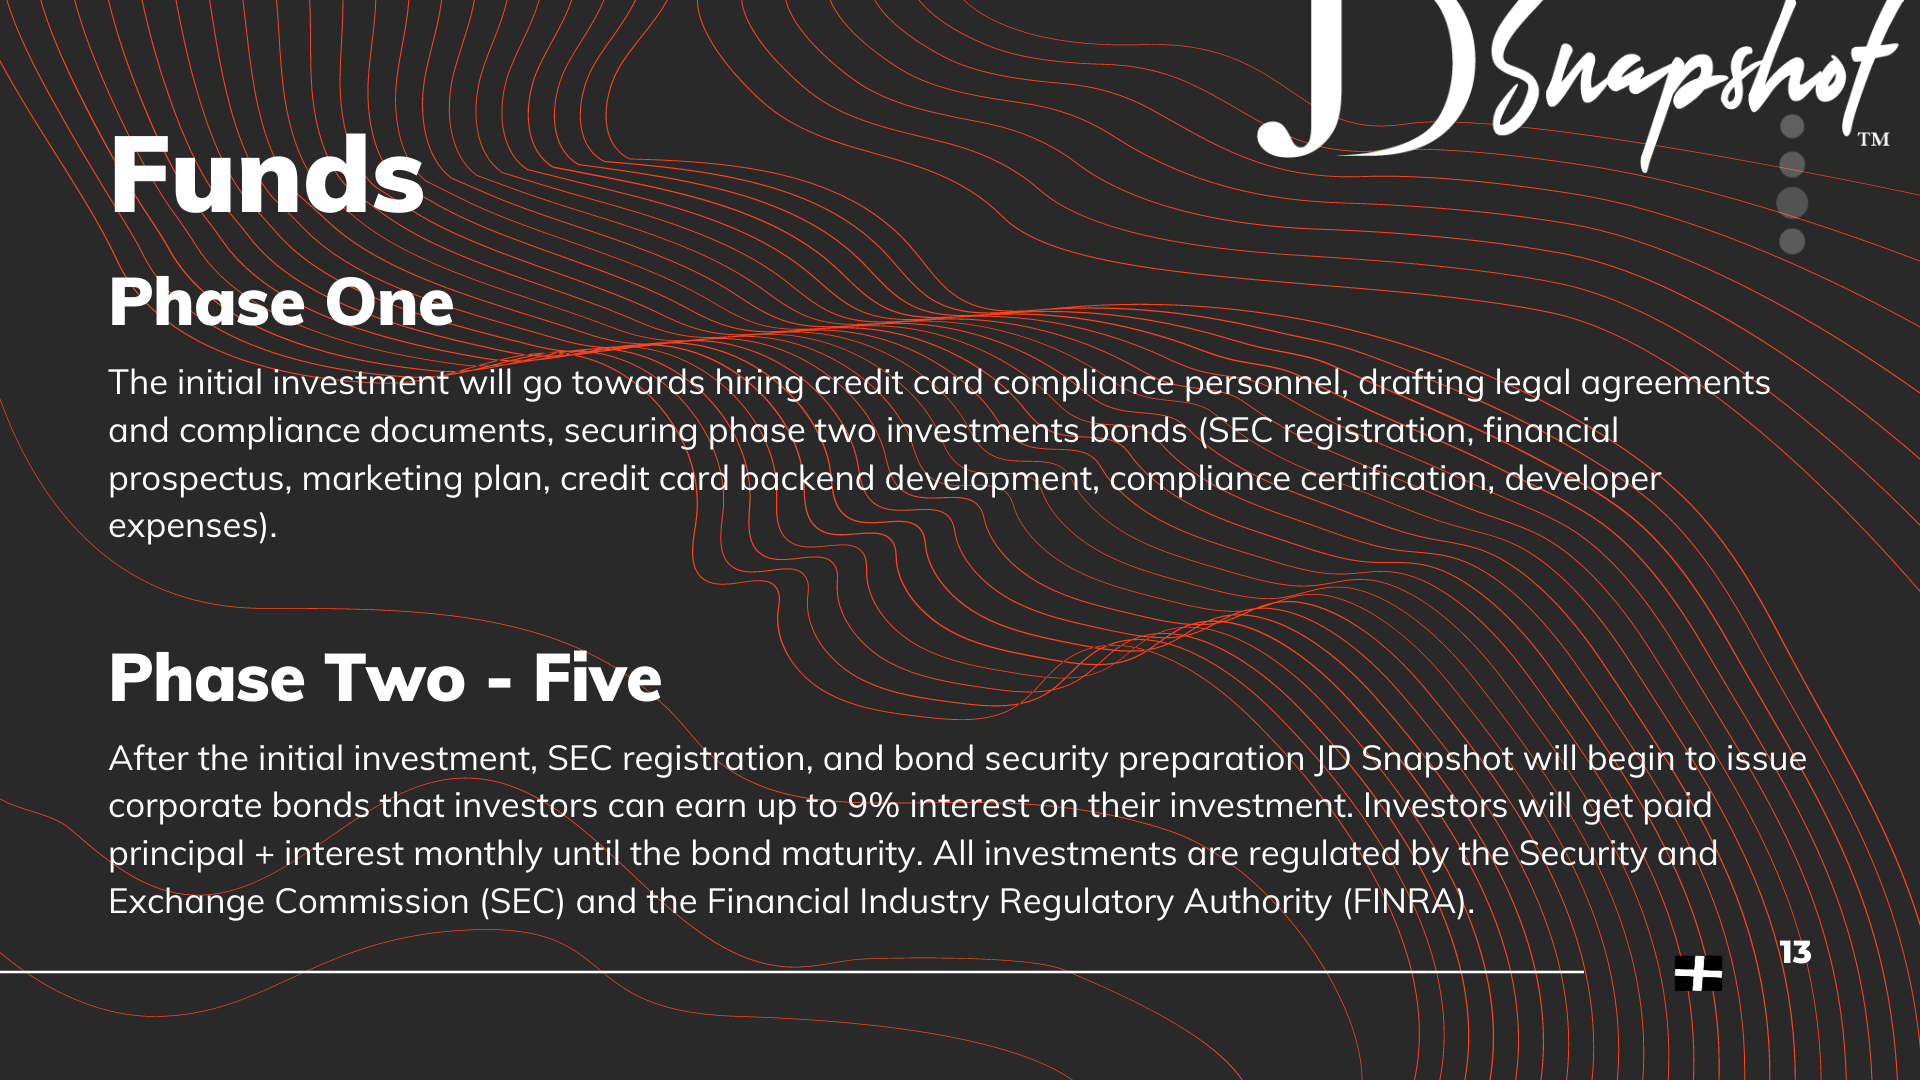 Funds | Phase One - The initial investment will go towards hiring credit card compliance personnel, drafting legal agreements and compliance documents, securing phase two investments bonds (SEC registration, financial prospectus, marketing plan, credit card backend development, compliance certification, developer expenses). Phase Two - Five - After the initial investment, SEC registration, and bond security preparation JD Snapshot will begin to issue corporate bonds that investors can earn up to 9% interest on their investment. Investors will get paid principal + interest monthly until the bond maturity. All investments are regulated by the Security and Exchange Commission (SEC) and the Financial Industry Regulatory Authority (FINRA).